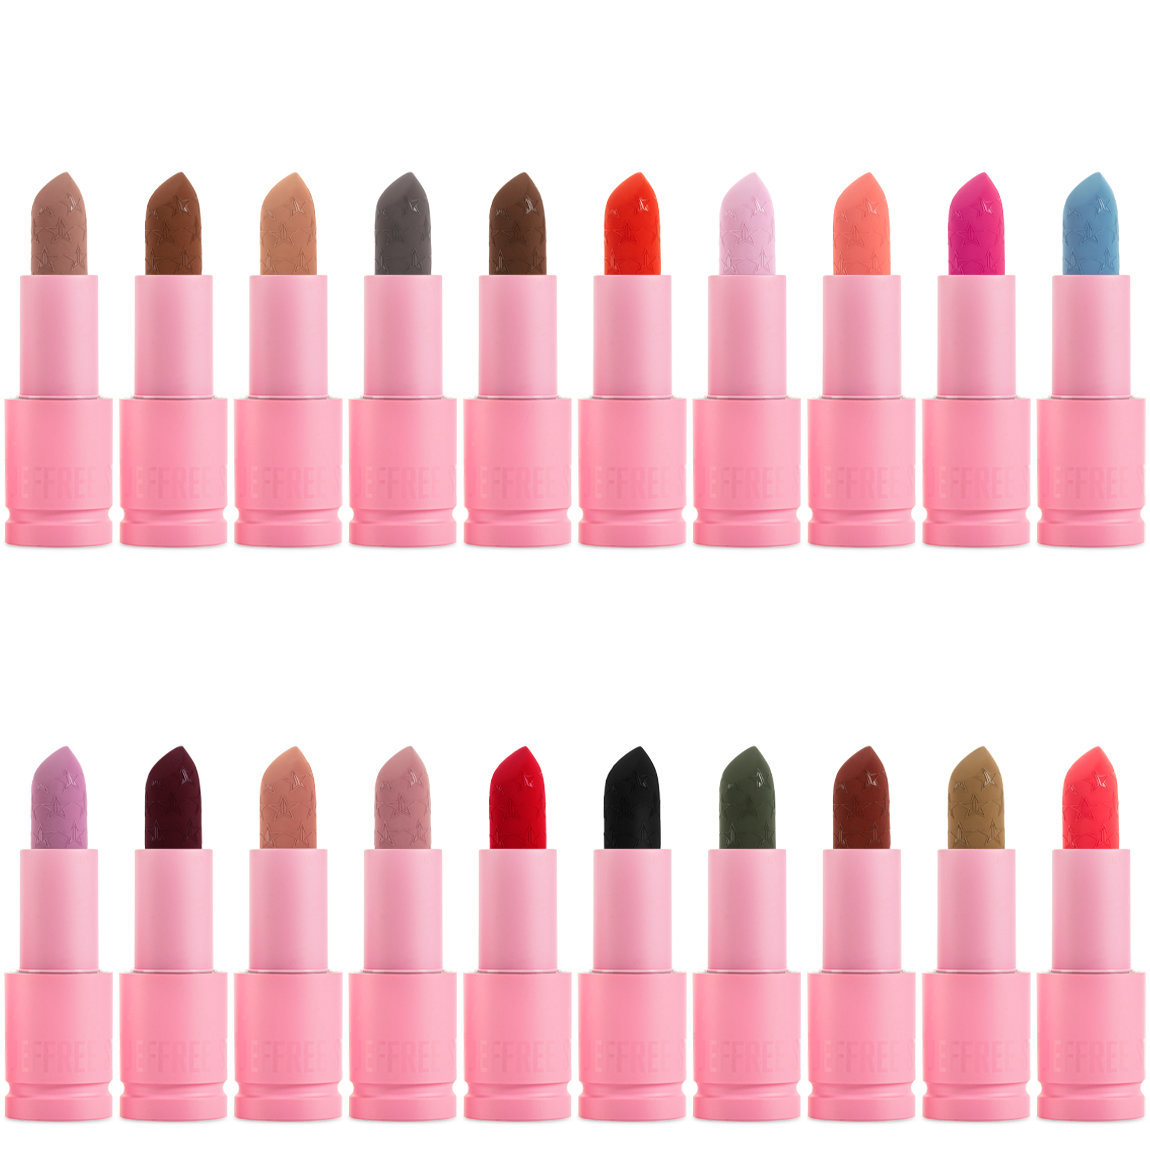 Jeffree Star Cosmetics Velvet Trap Lipstick Collection alternative view 1 - product swatch.